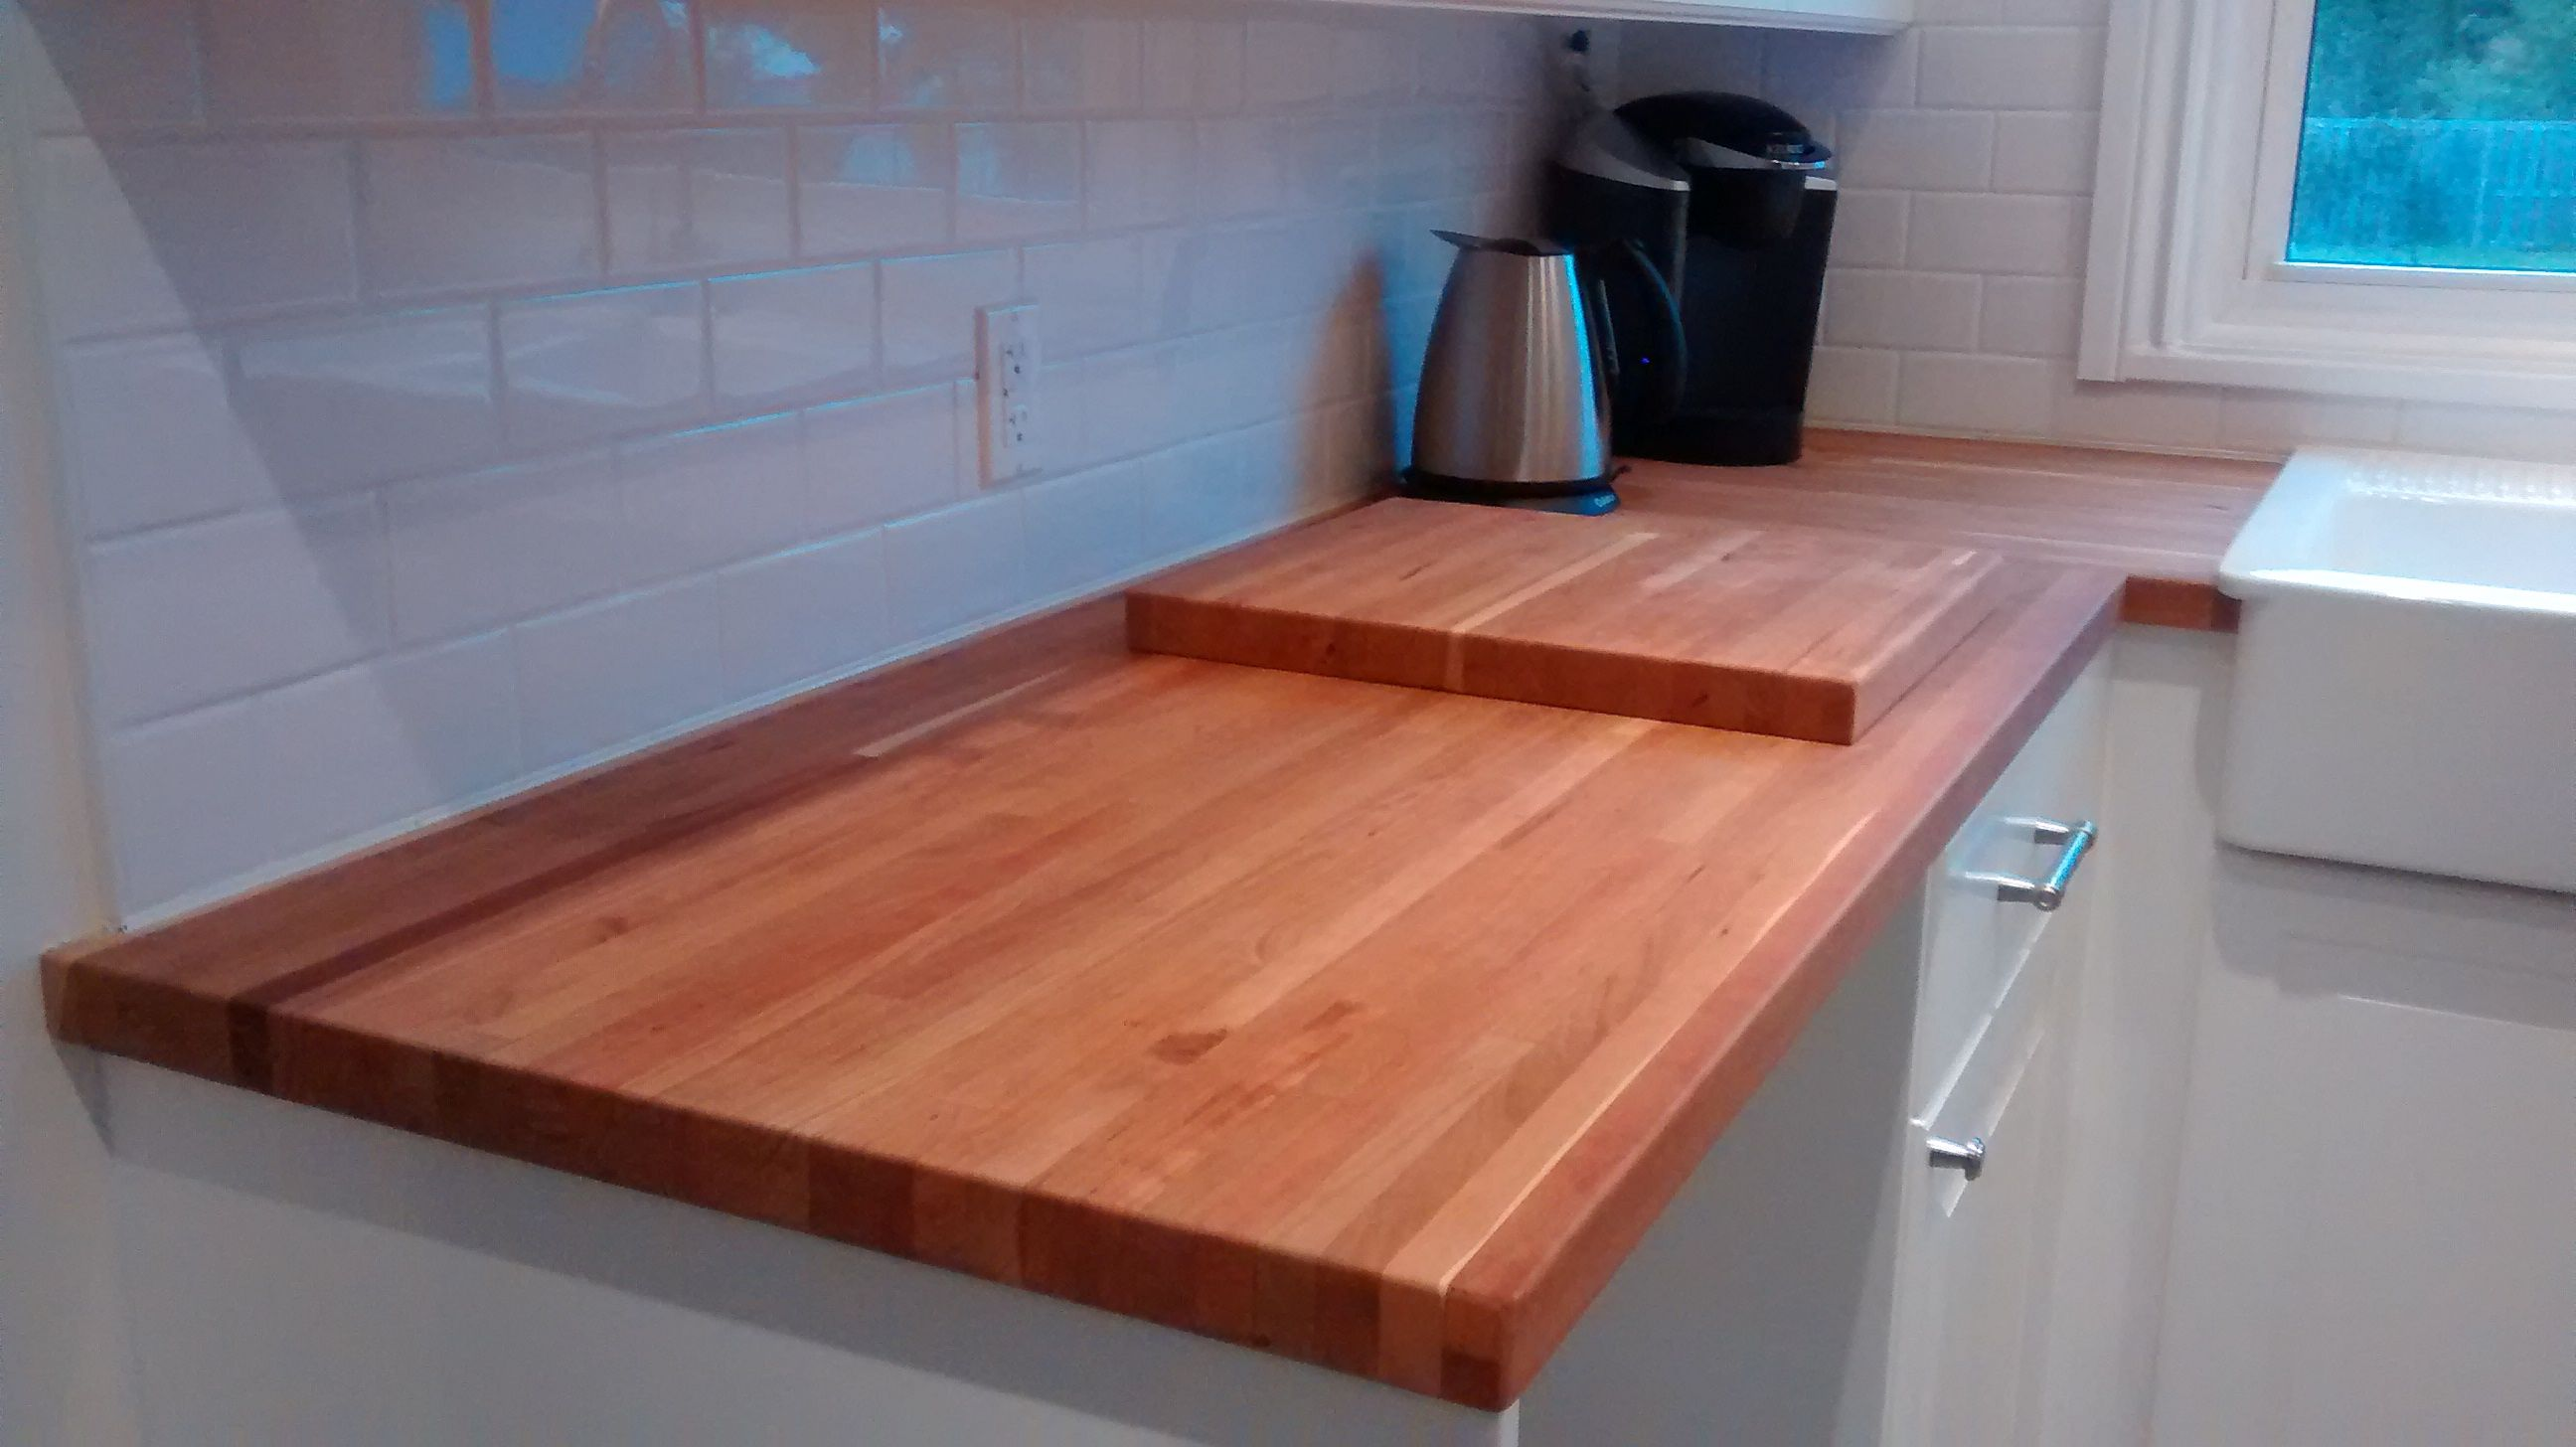 The American Cherry Butcher Block Counters Add Incredible Warmth And Character To The Space Butcher Block Counter Butcher Block Ikea Kitchen